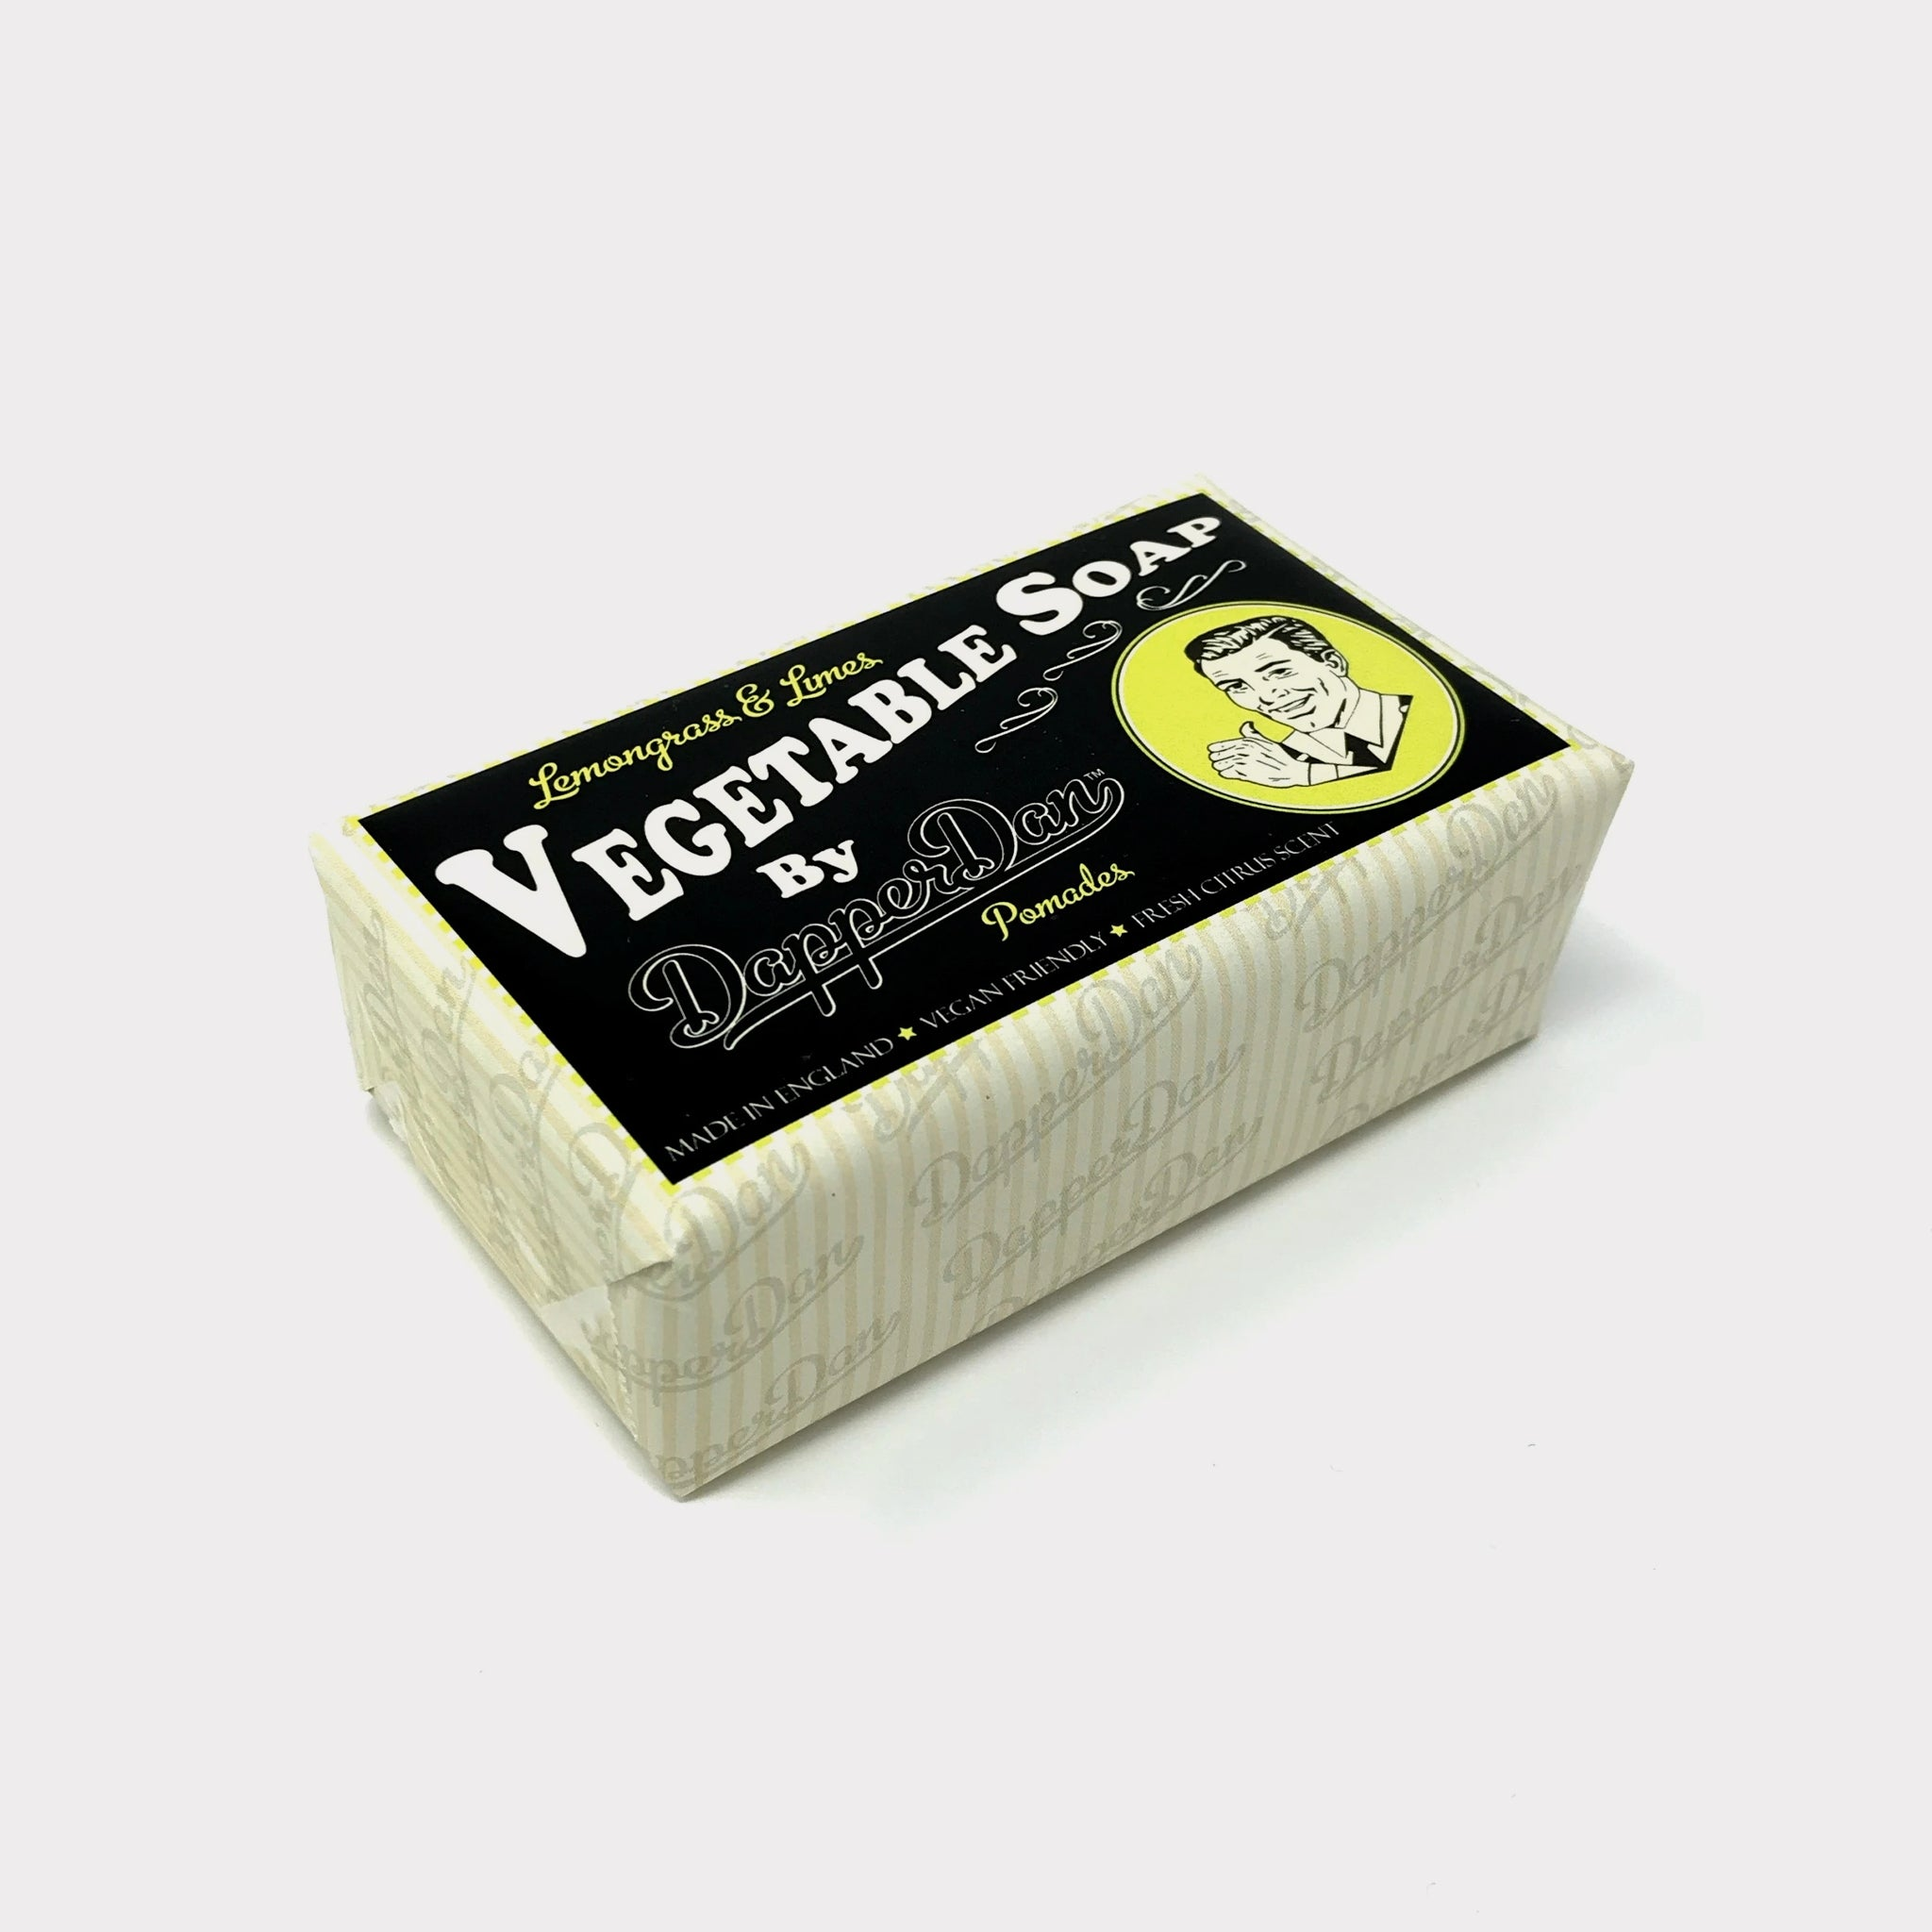 Dapper Dan Lemongrass & Limes Vegetable Soap 190g